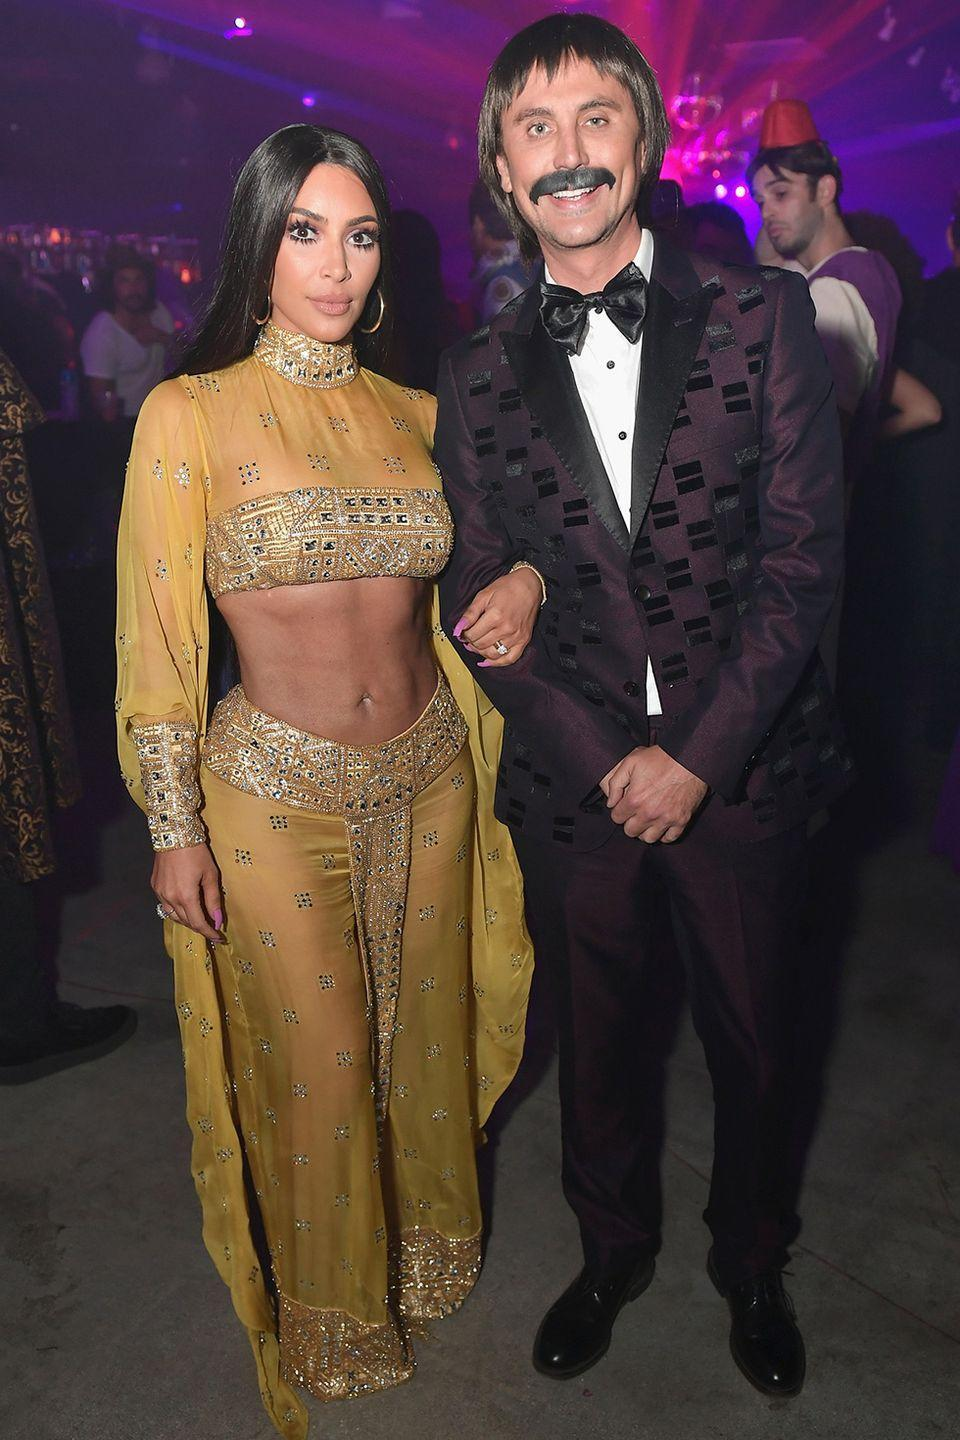 <p>Kim Kardashian and bestie Jonathan Cheban dressed up as Sunny and Cher in 2017 for the Casamigos Halloween party.</p>